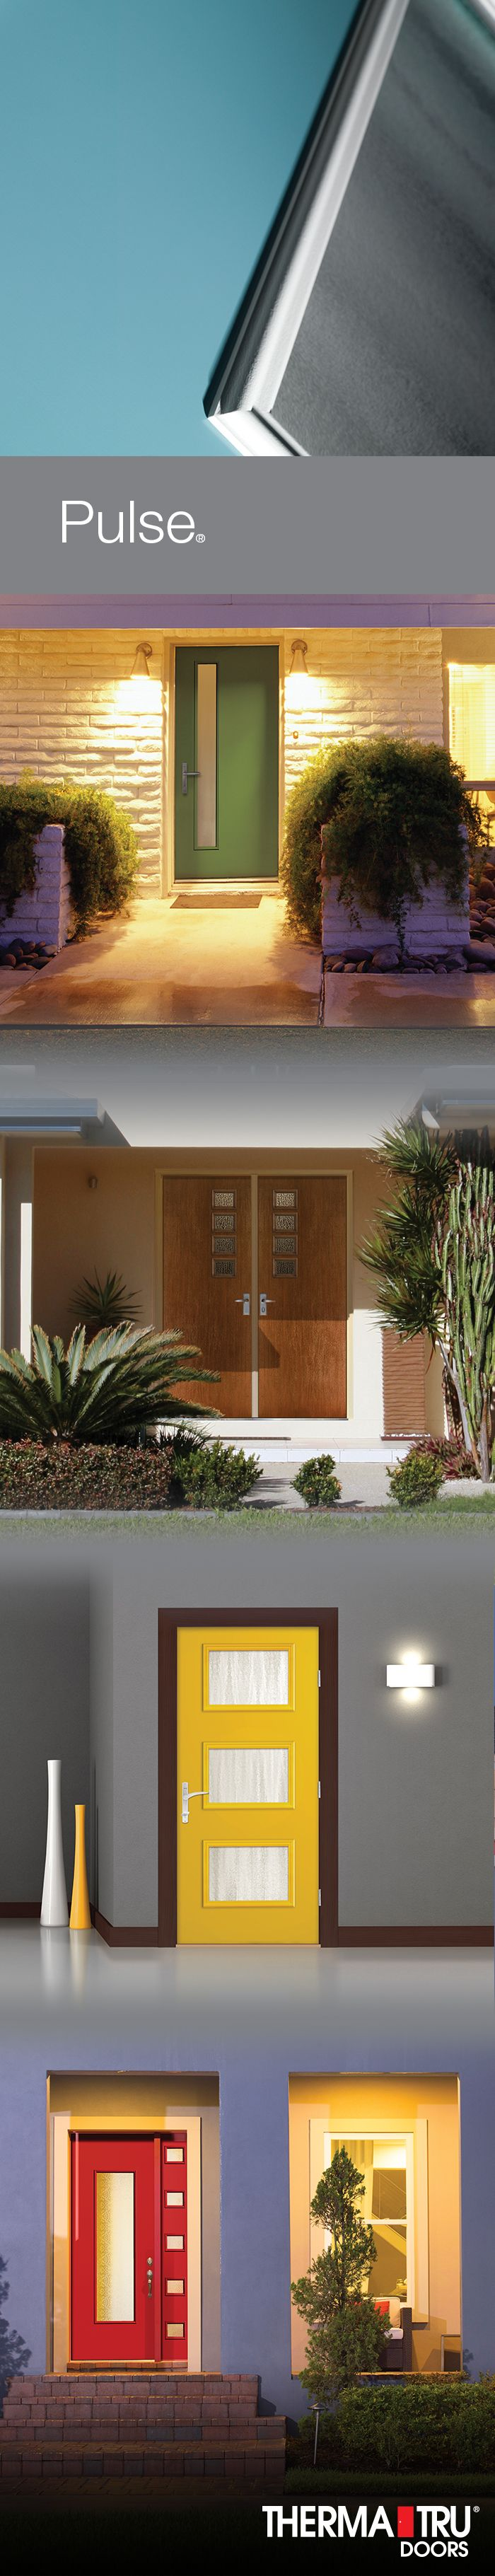 Pulse entry doors are designed to be fun and easy to mix and match with sleek, flush door and sidelite styles. With four distinct aesthetic approaches – Ari, Línea, Echo and Solei – the entrance becomes modern art.